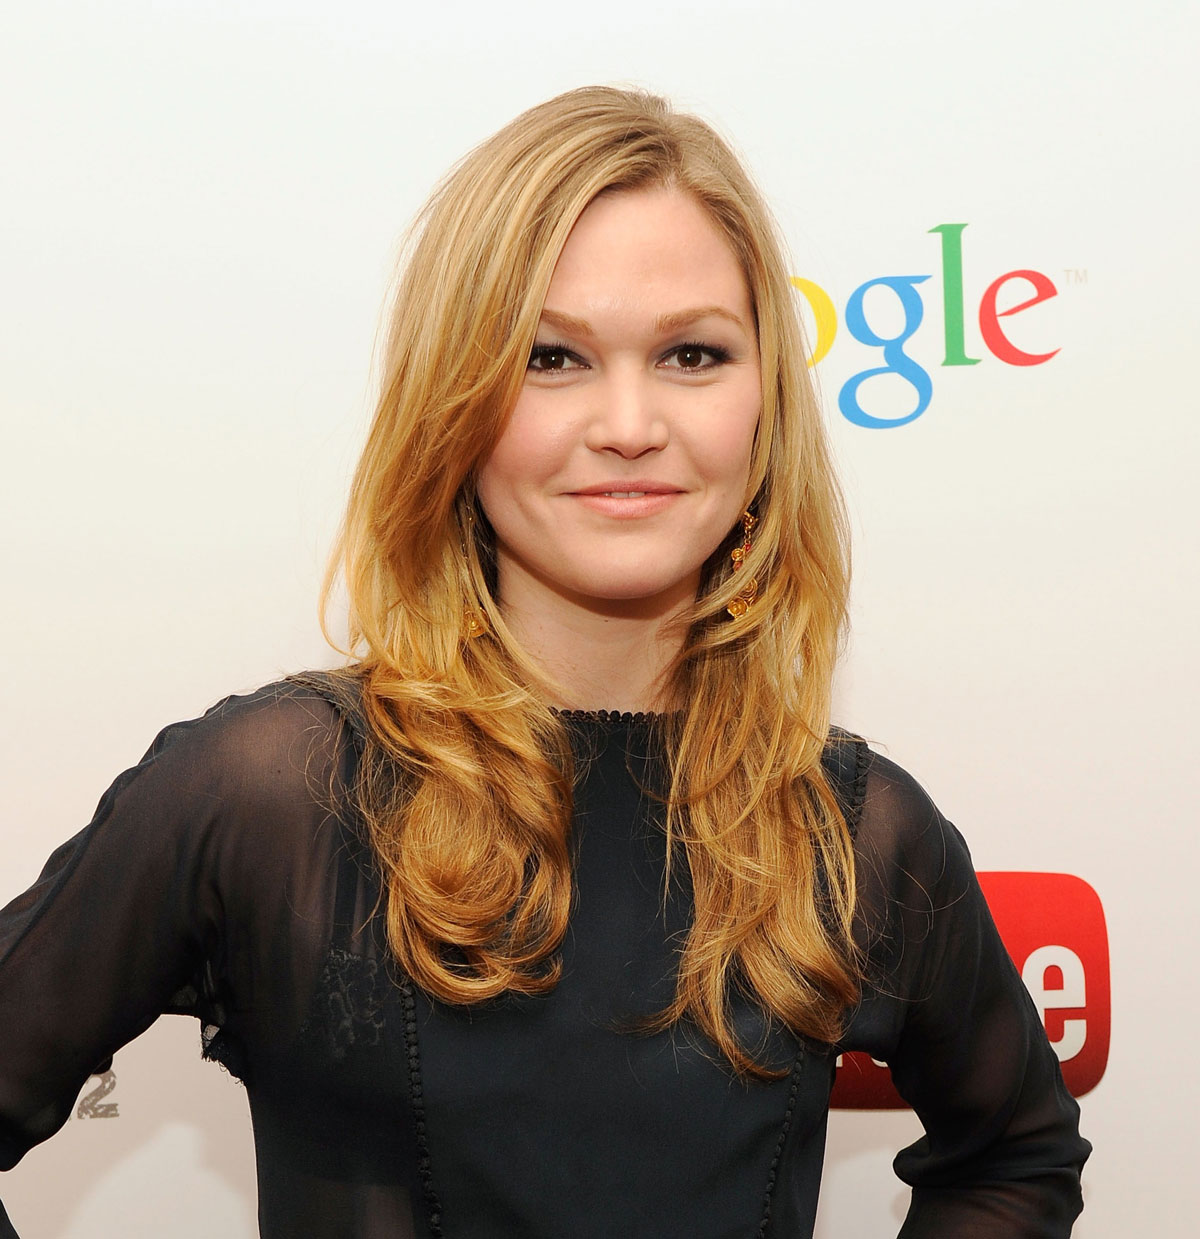 Julia Stiles Her Religion Her Hobbies And Political Views